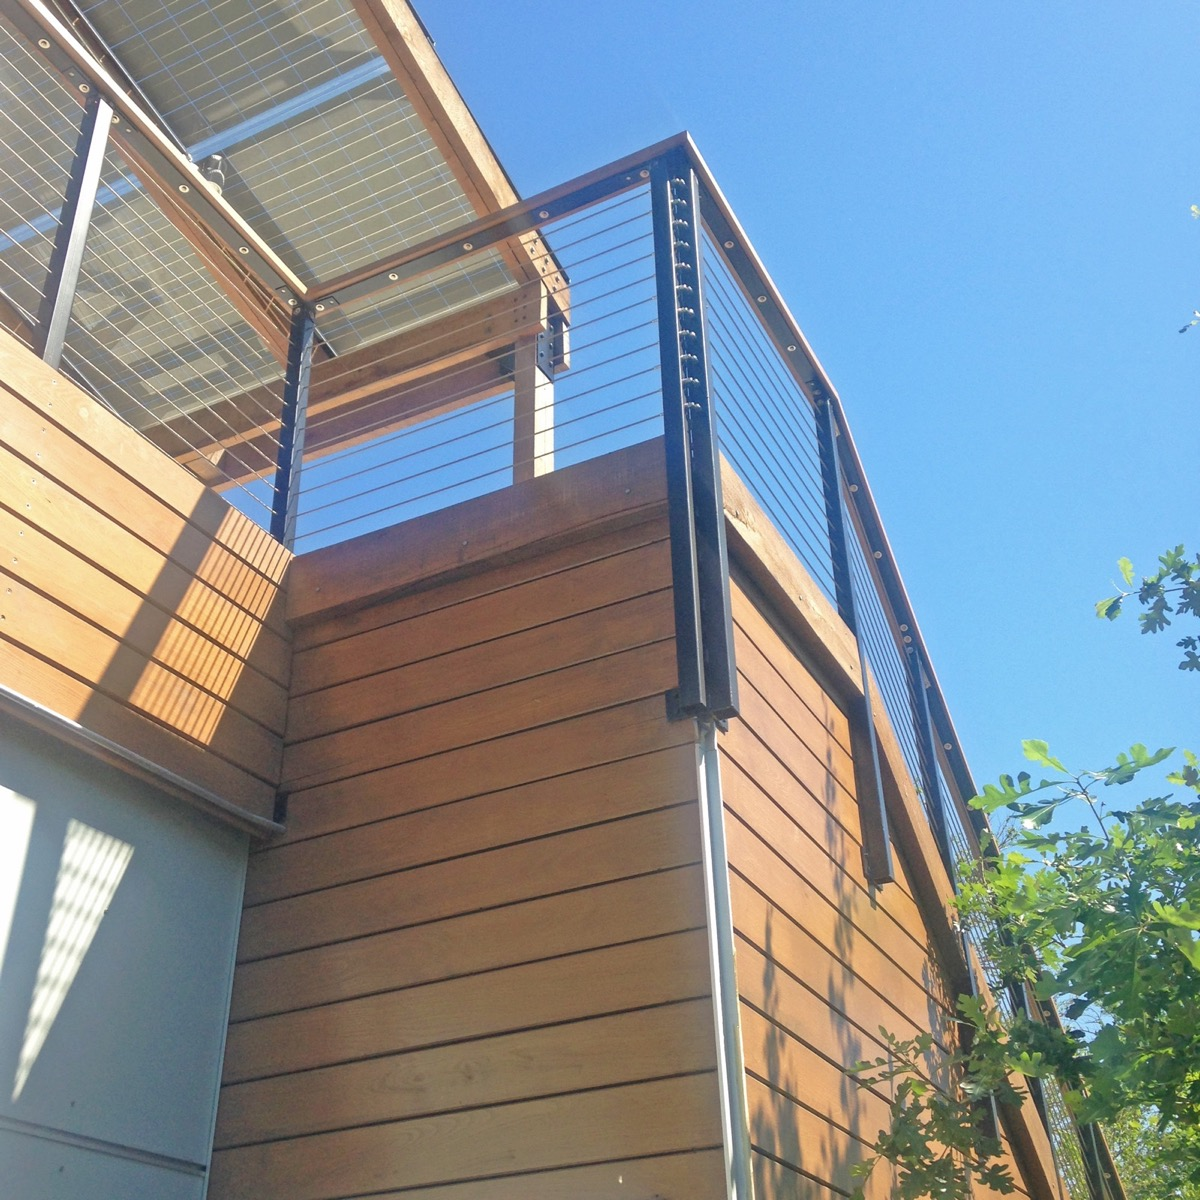 Railing for Solar Panel Structure in Minneapolis, MN